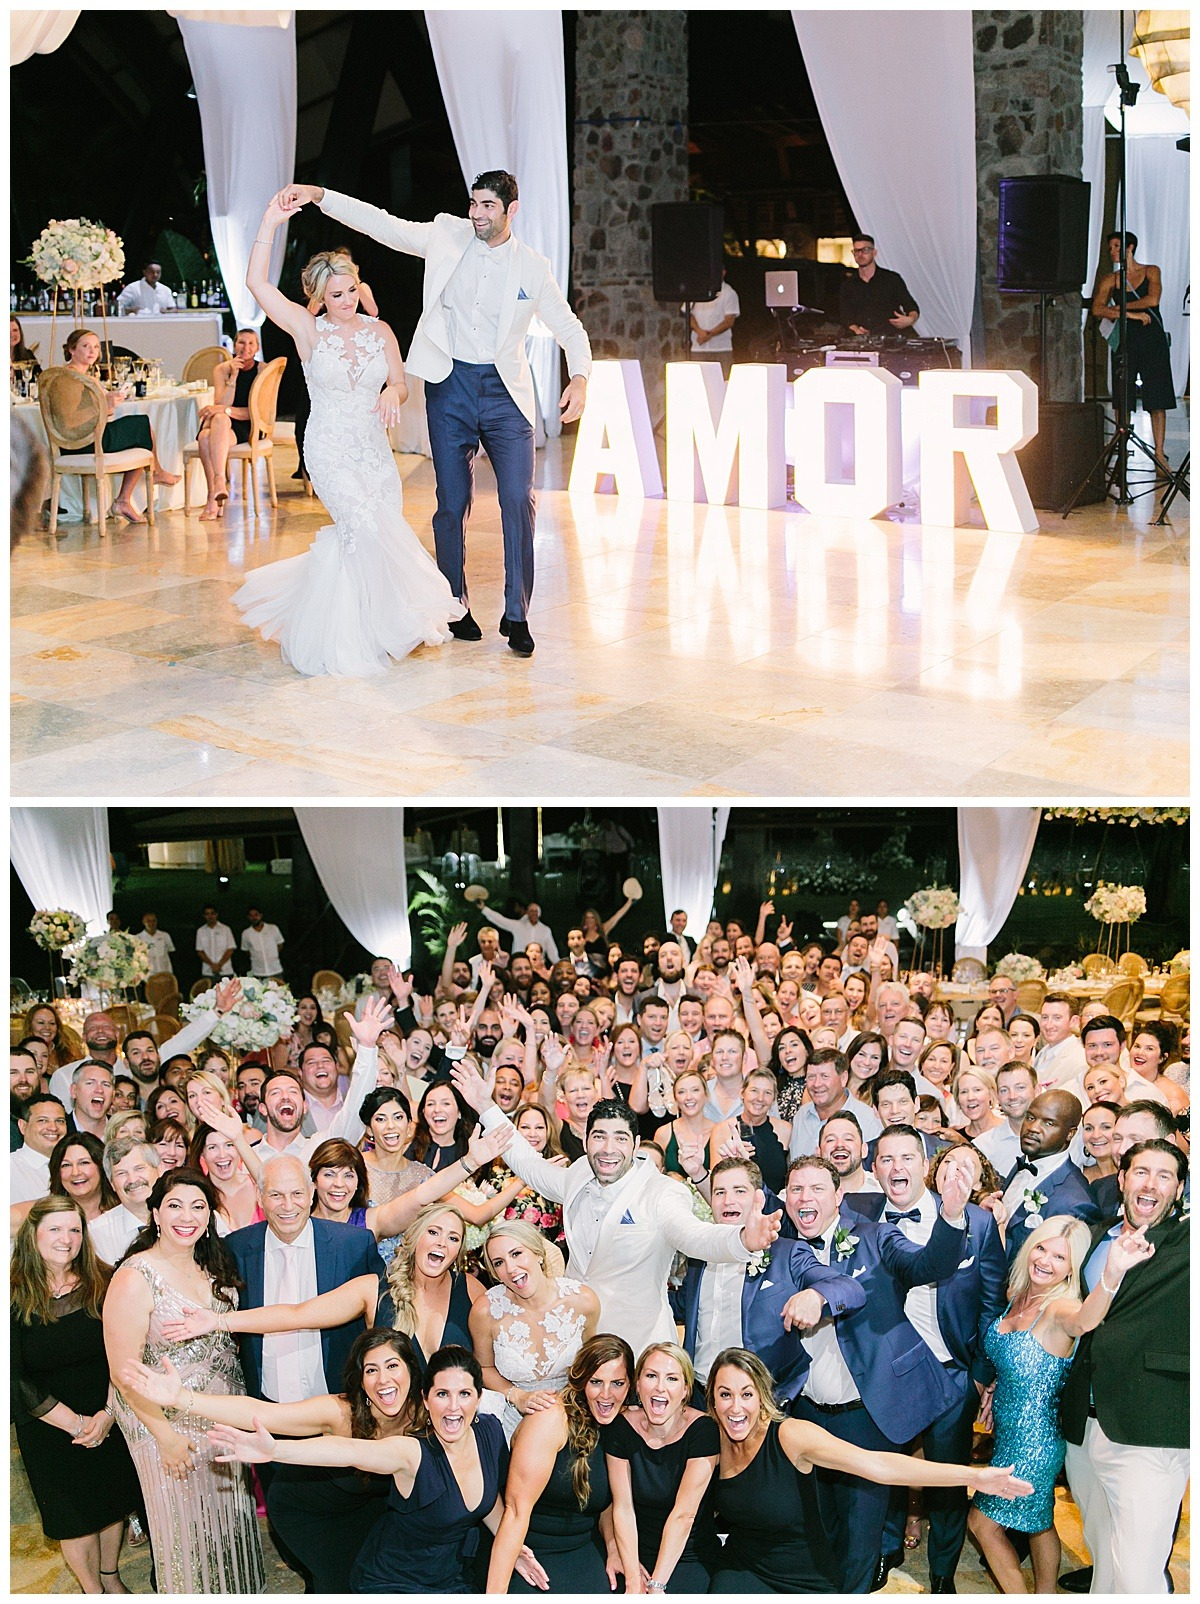 dancing by the amor love sign letters